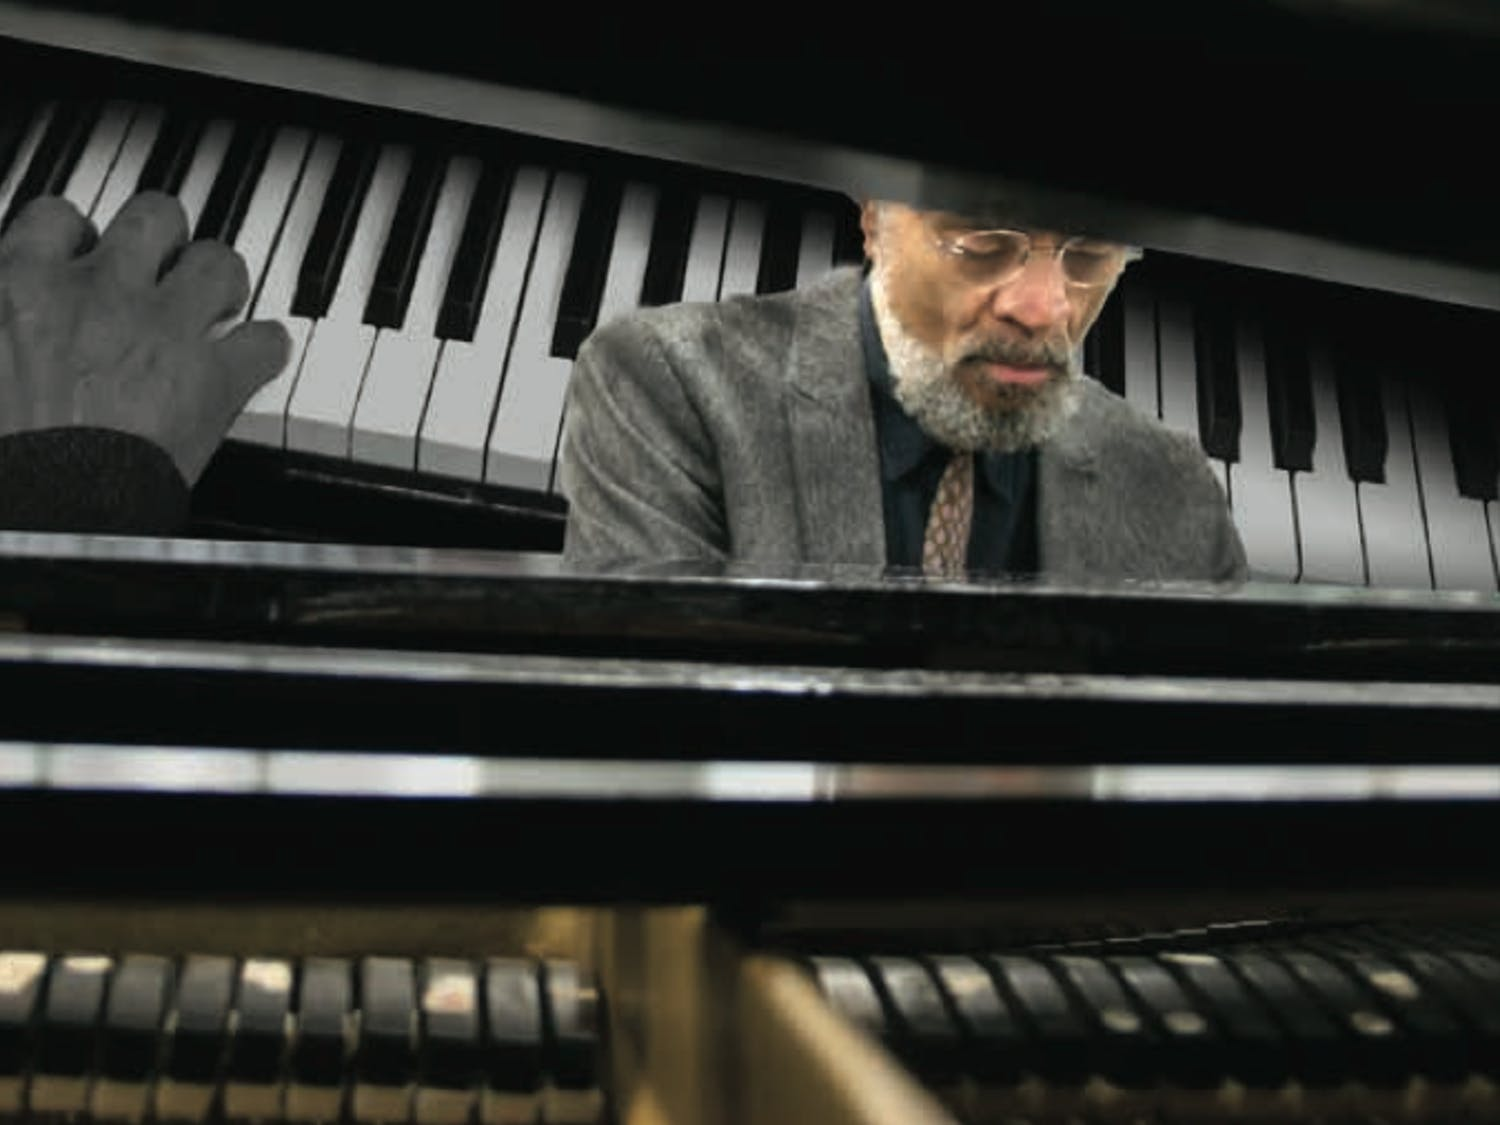 UB instructorGeorge Caldwell sits behind the piano.Grammy Award-winning jazz pianist inspires his students by imparting lessons from his past.